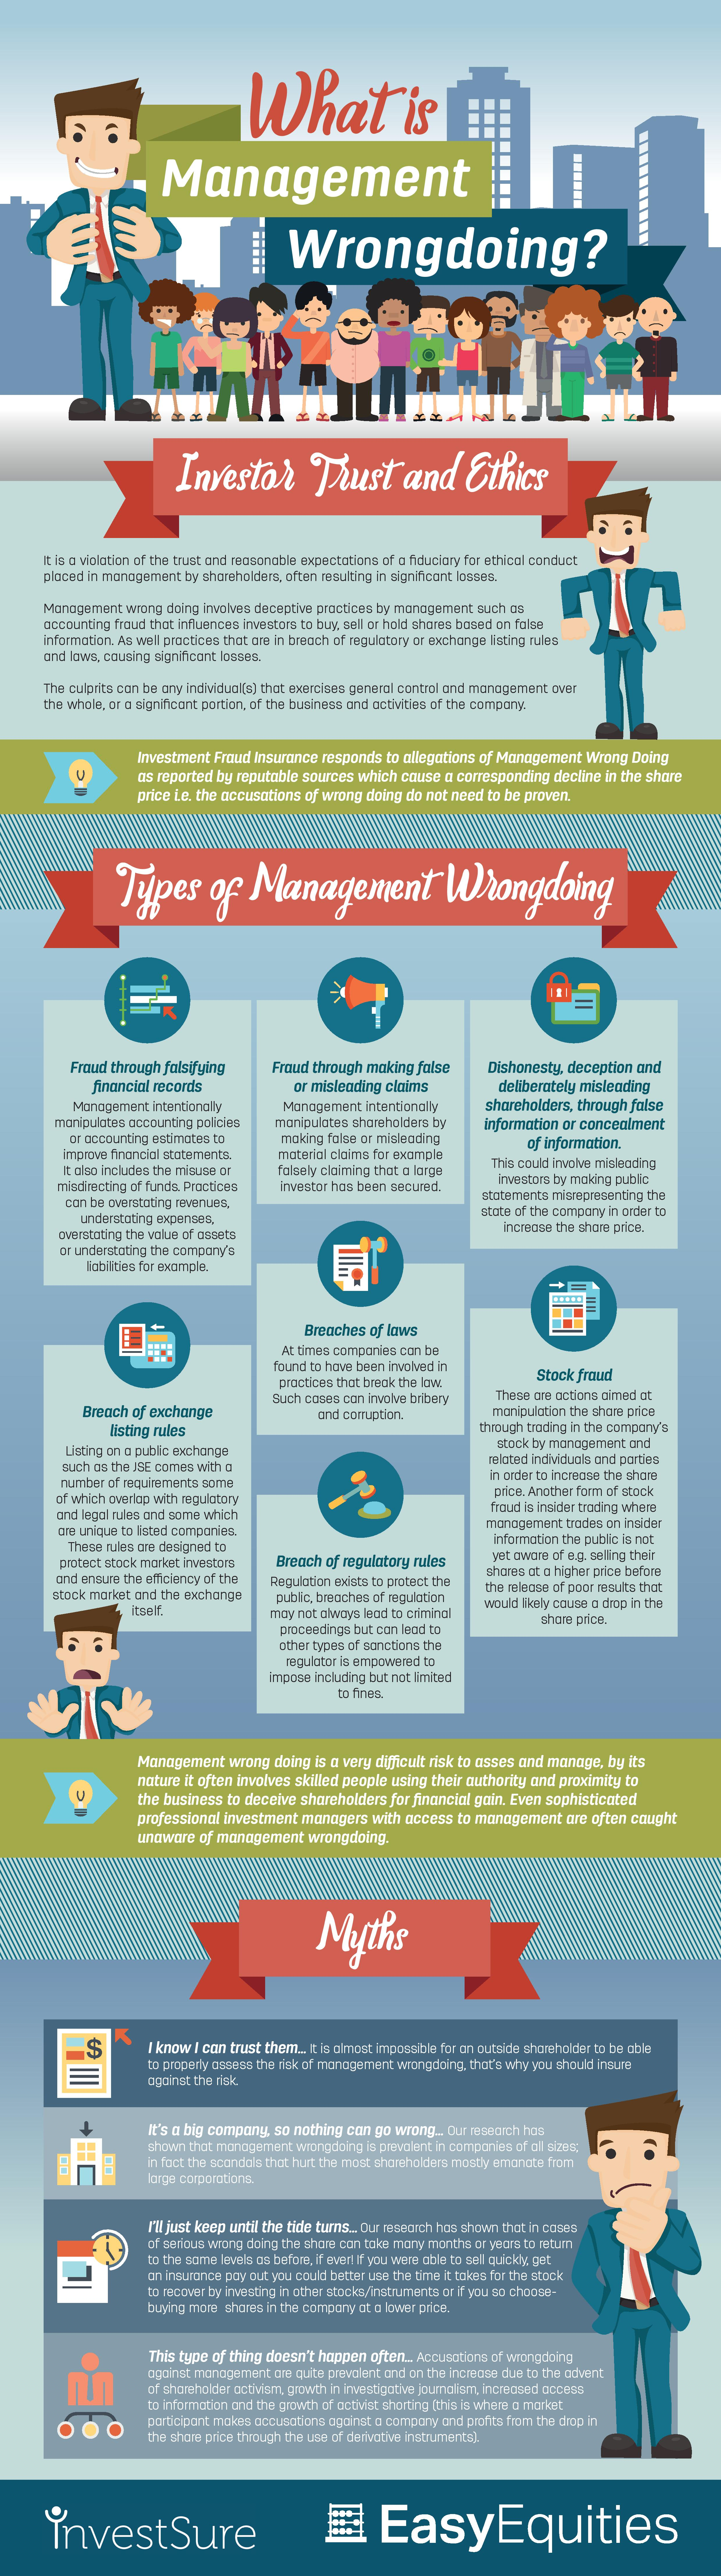 Investsure Management Wrongdoing Infographic (2)-page-001